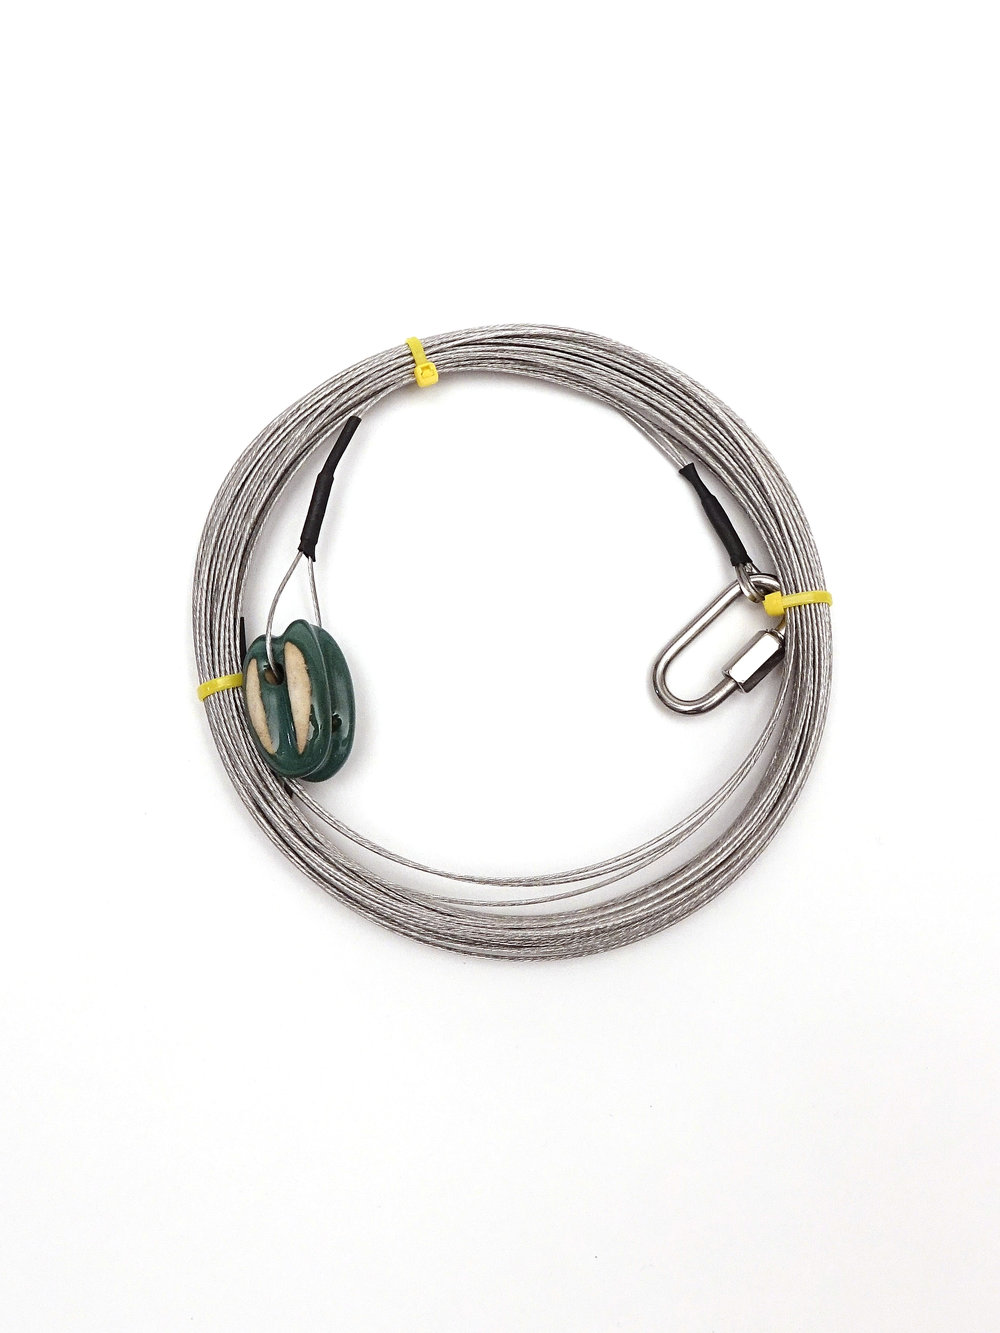 Coated Stainless Steel Wire used in IMD-109 Go Anywhere Antenna